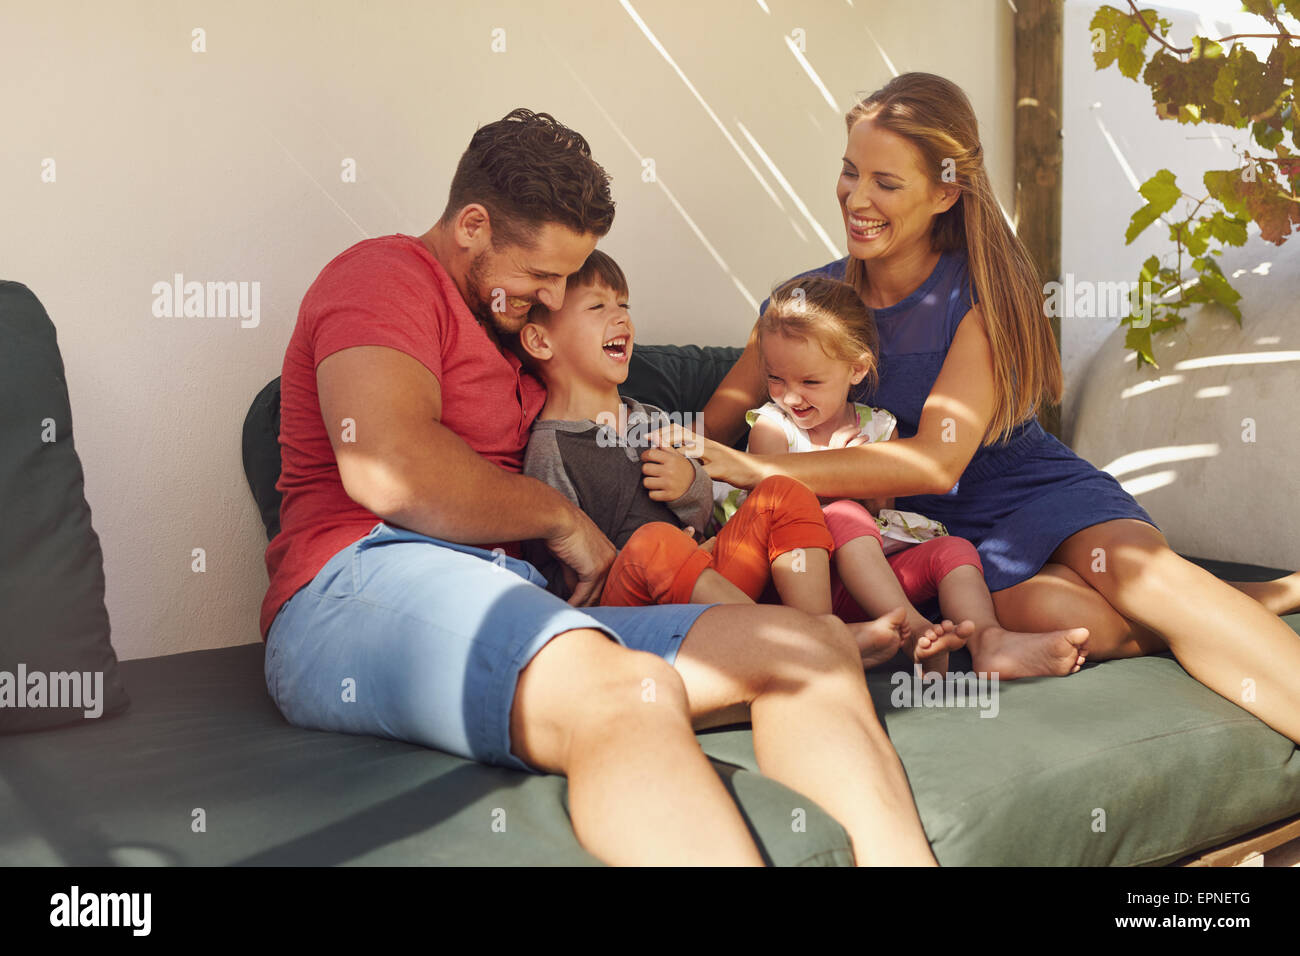 Photo de famille heureuse de quatre dans son jardin en s'amusant, assis sur la table de lecture. Les parents Photo Stock